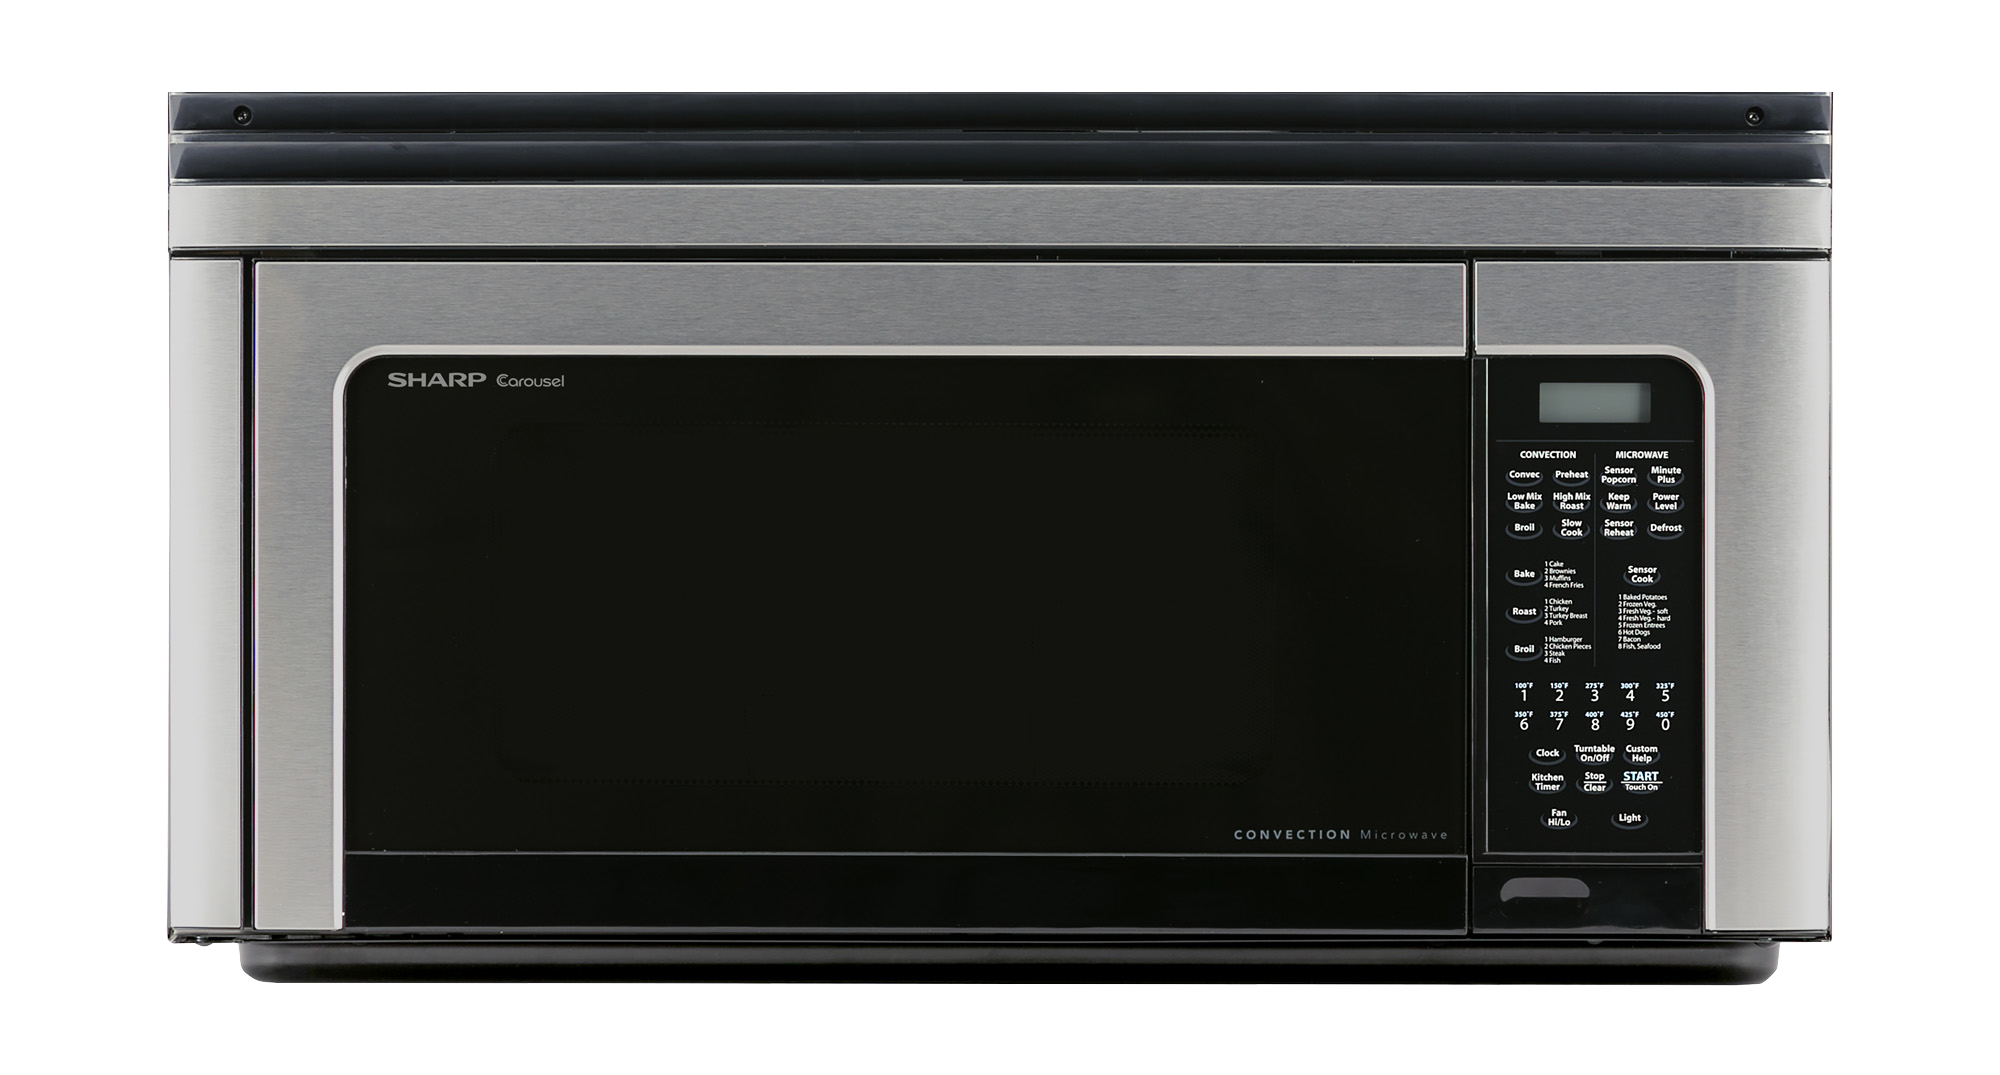 Microwave Oven Types Bestmicrowave